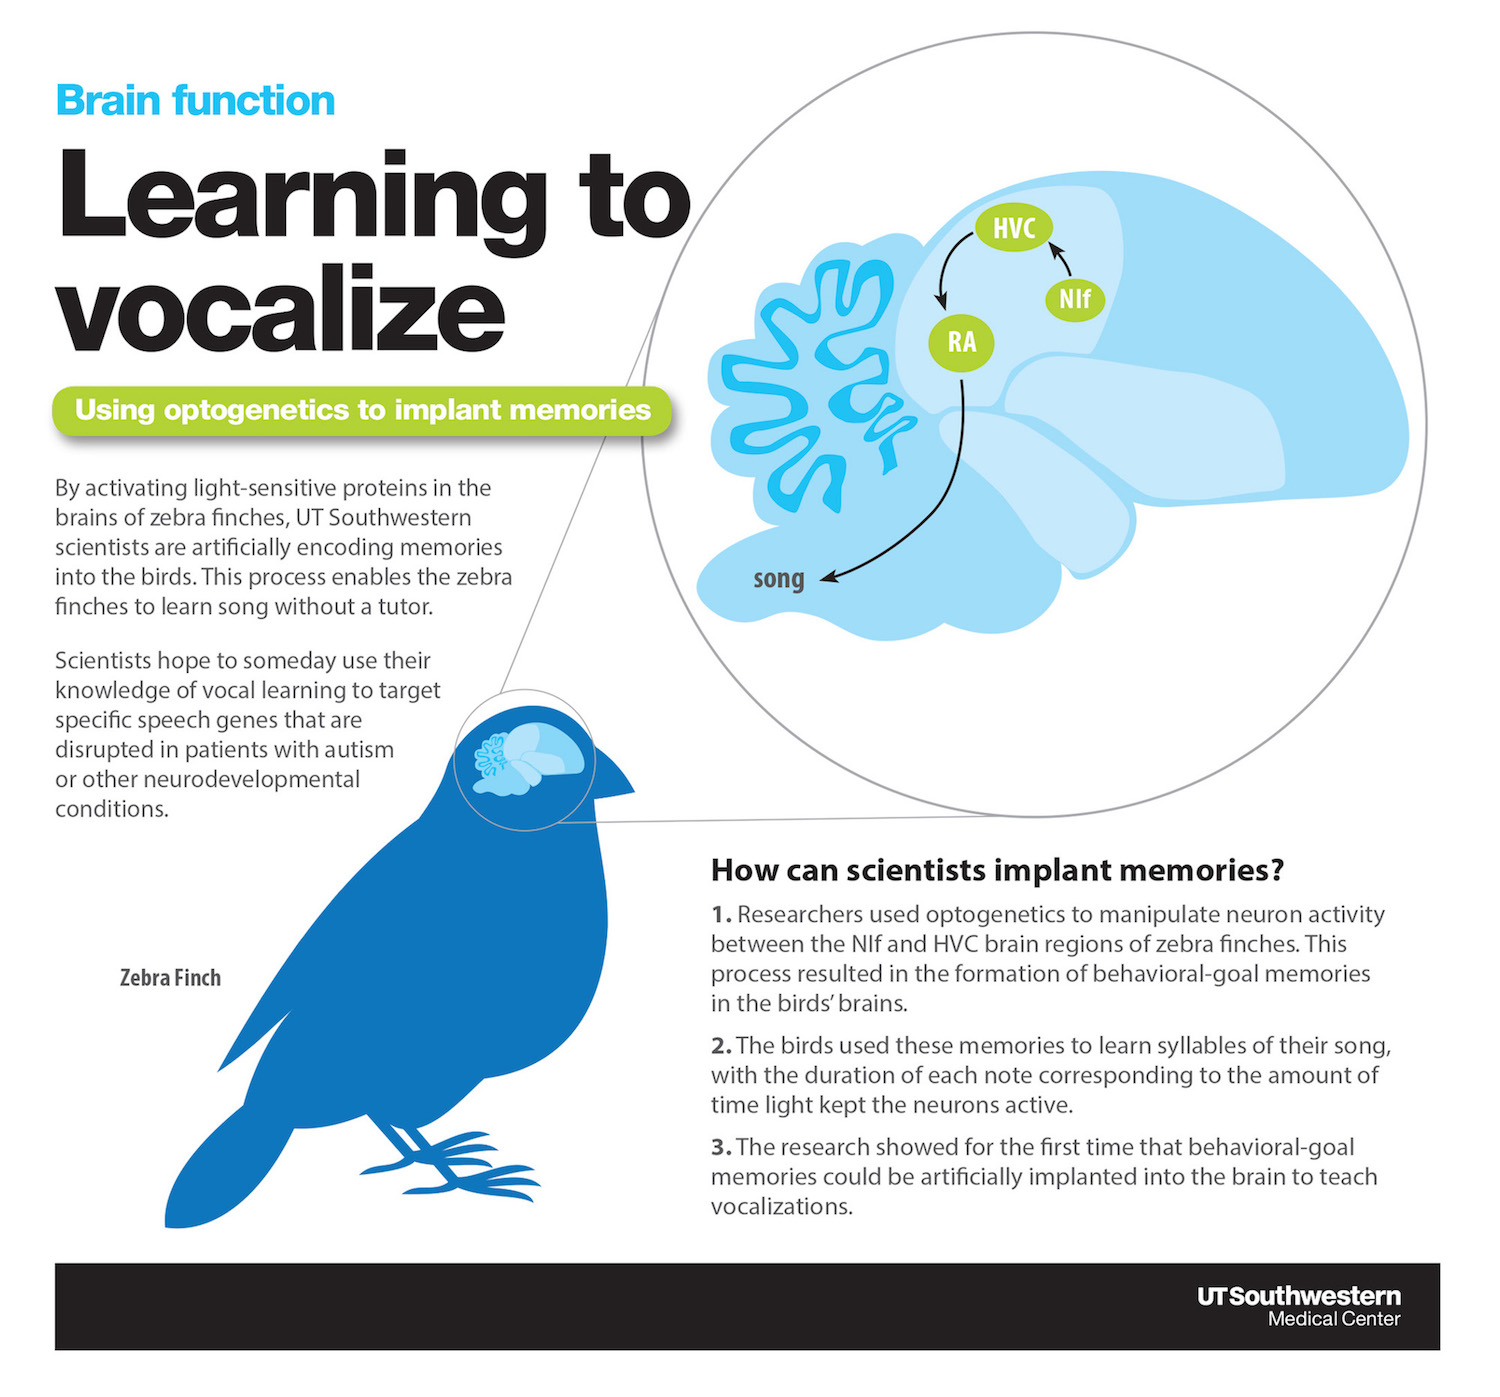 Vocal learning infographic: Learning to vocalize. Using optogenetics to implant memories